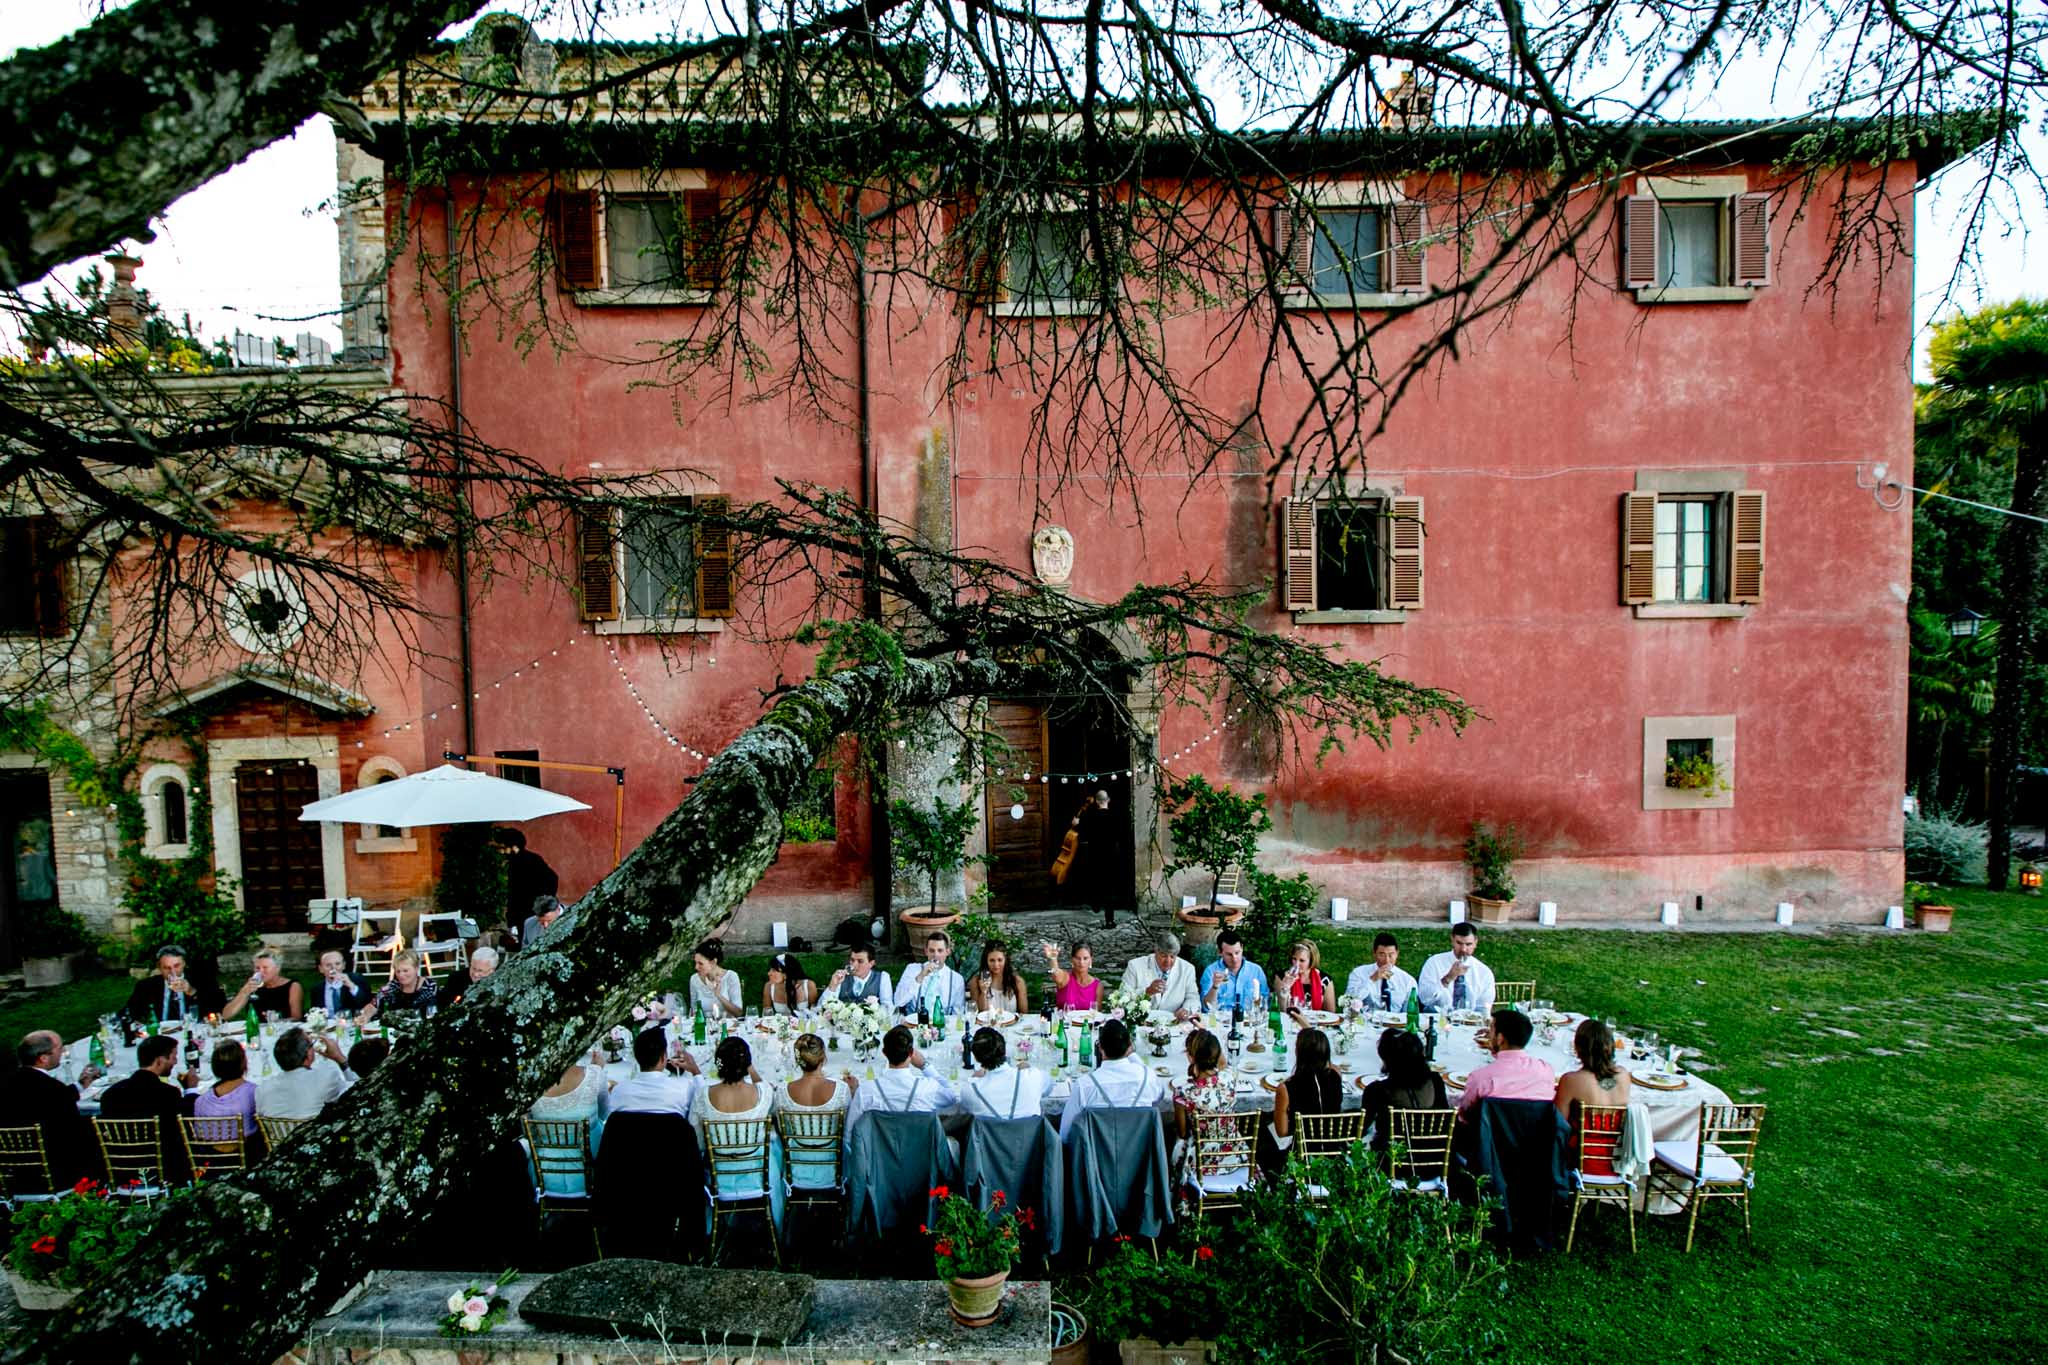 Wedding reception long table at Villa Tre Grazie in Umbria Italy near Todi